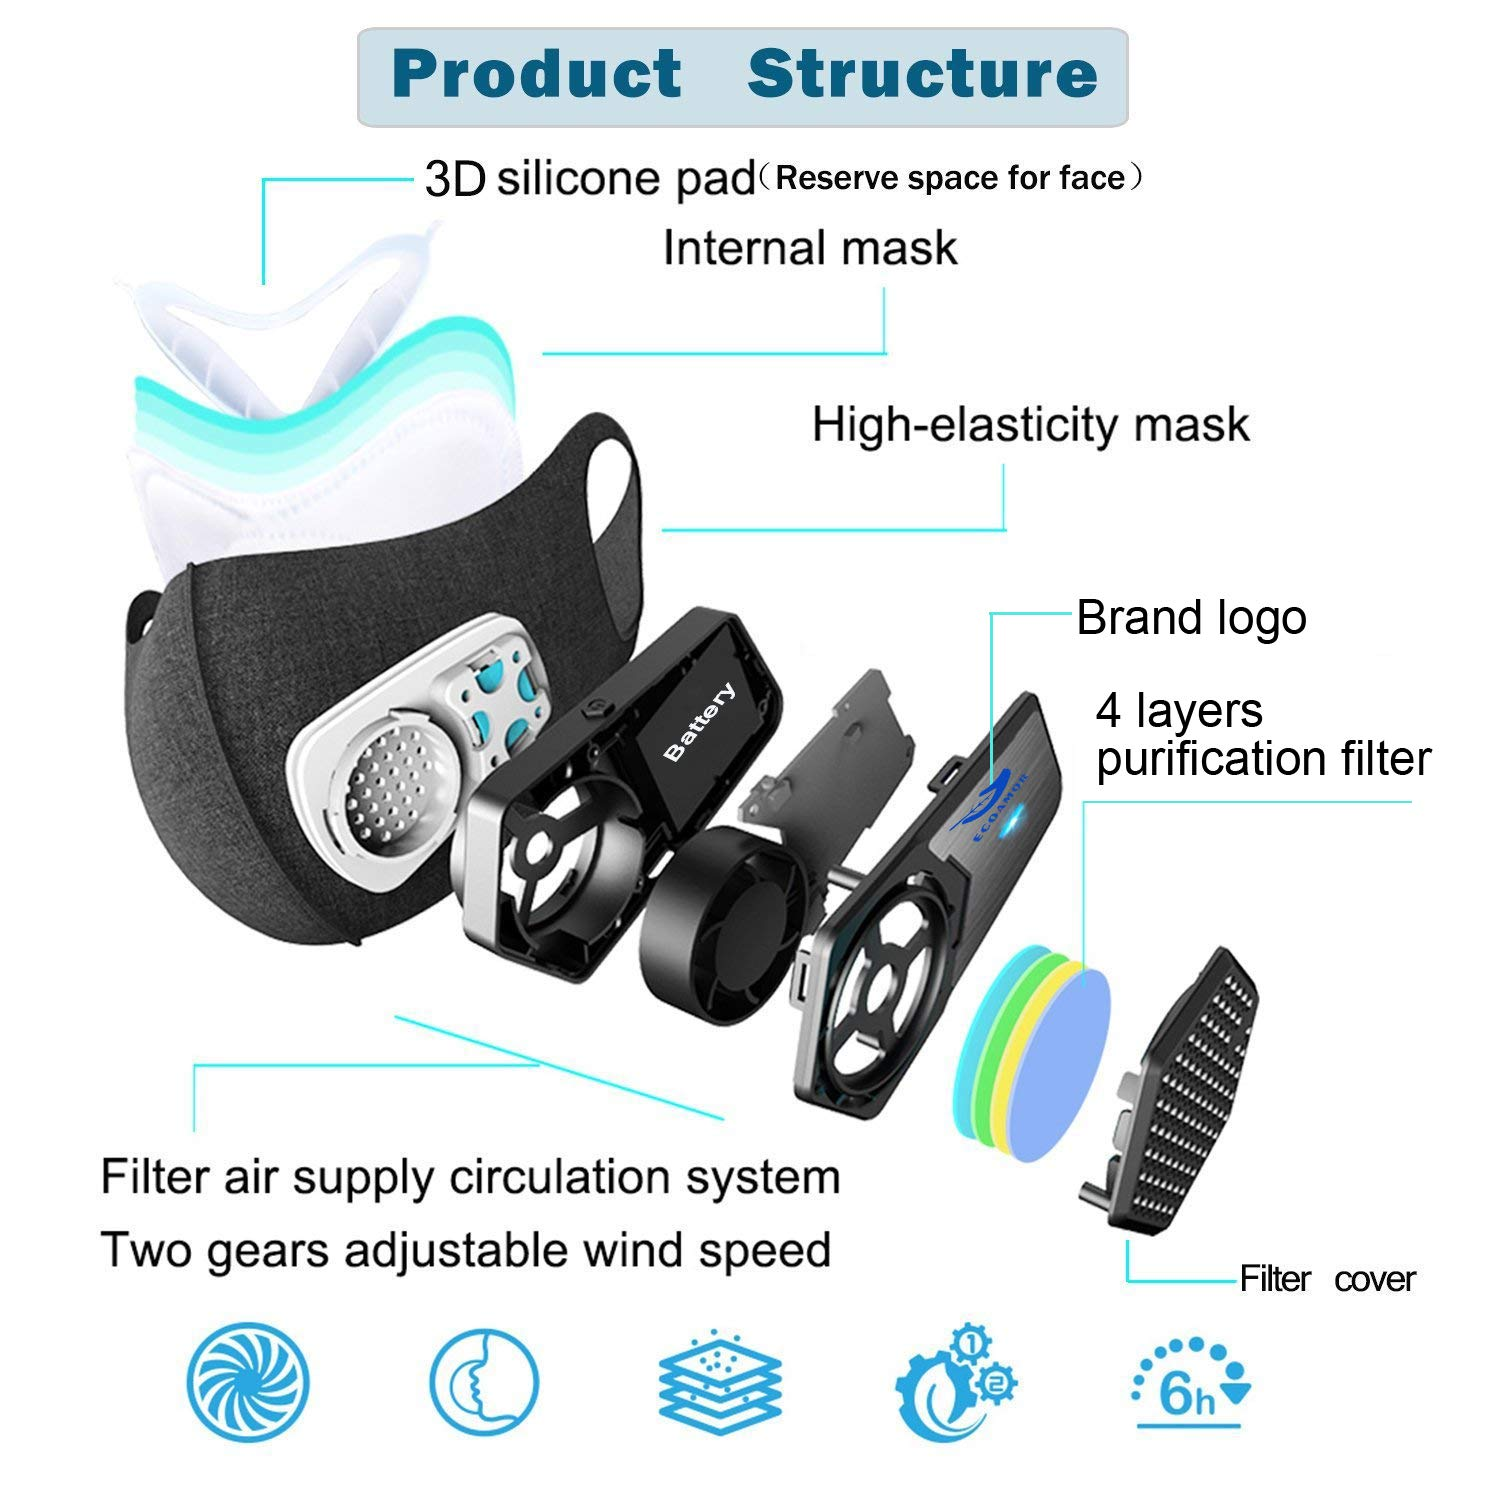 Anti Dust Electric Mask Reusable n95 Respirator for Face Air Purifying, ECOAMOR Washable Safety Masks for Outdoor Sports,Sanding,Gardening,TravelResist Dust,Germs,Allergies,PM2.5,Best Respirator Mask by ECOAMOR (Image #6)